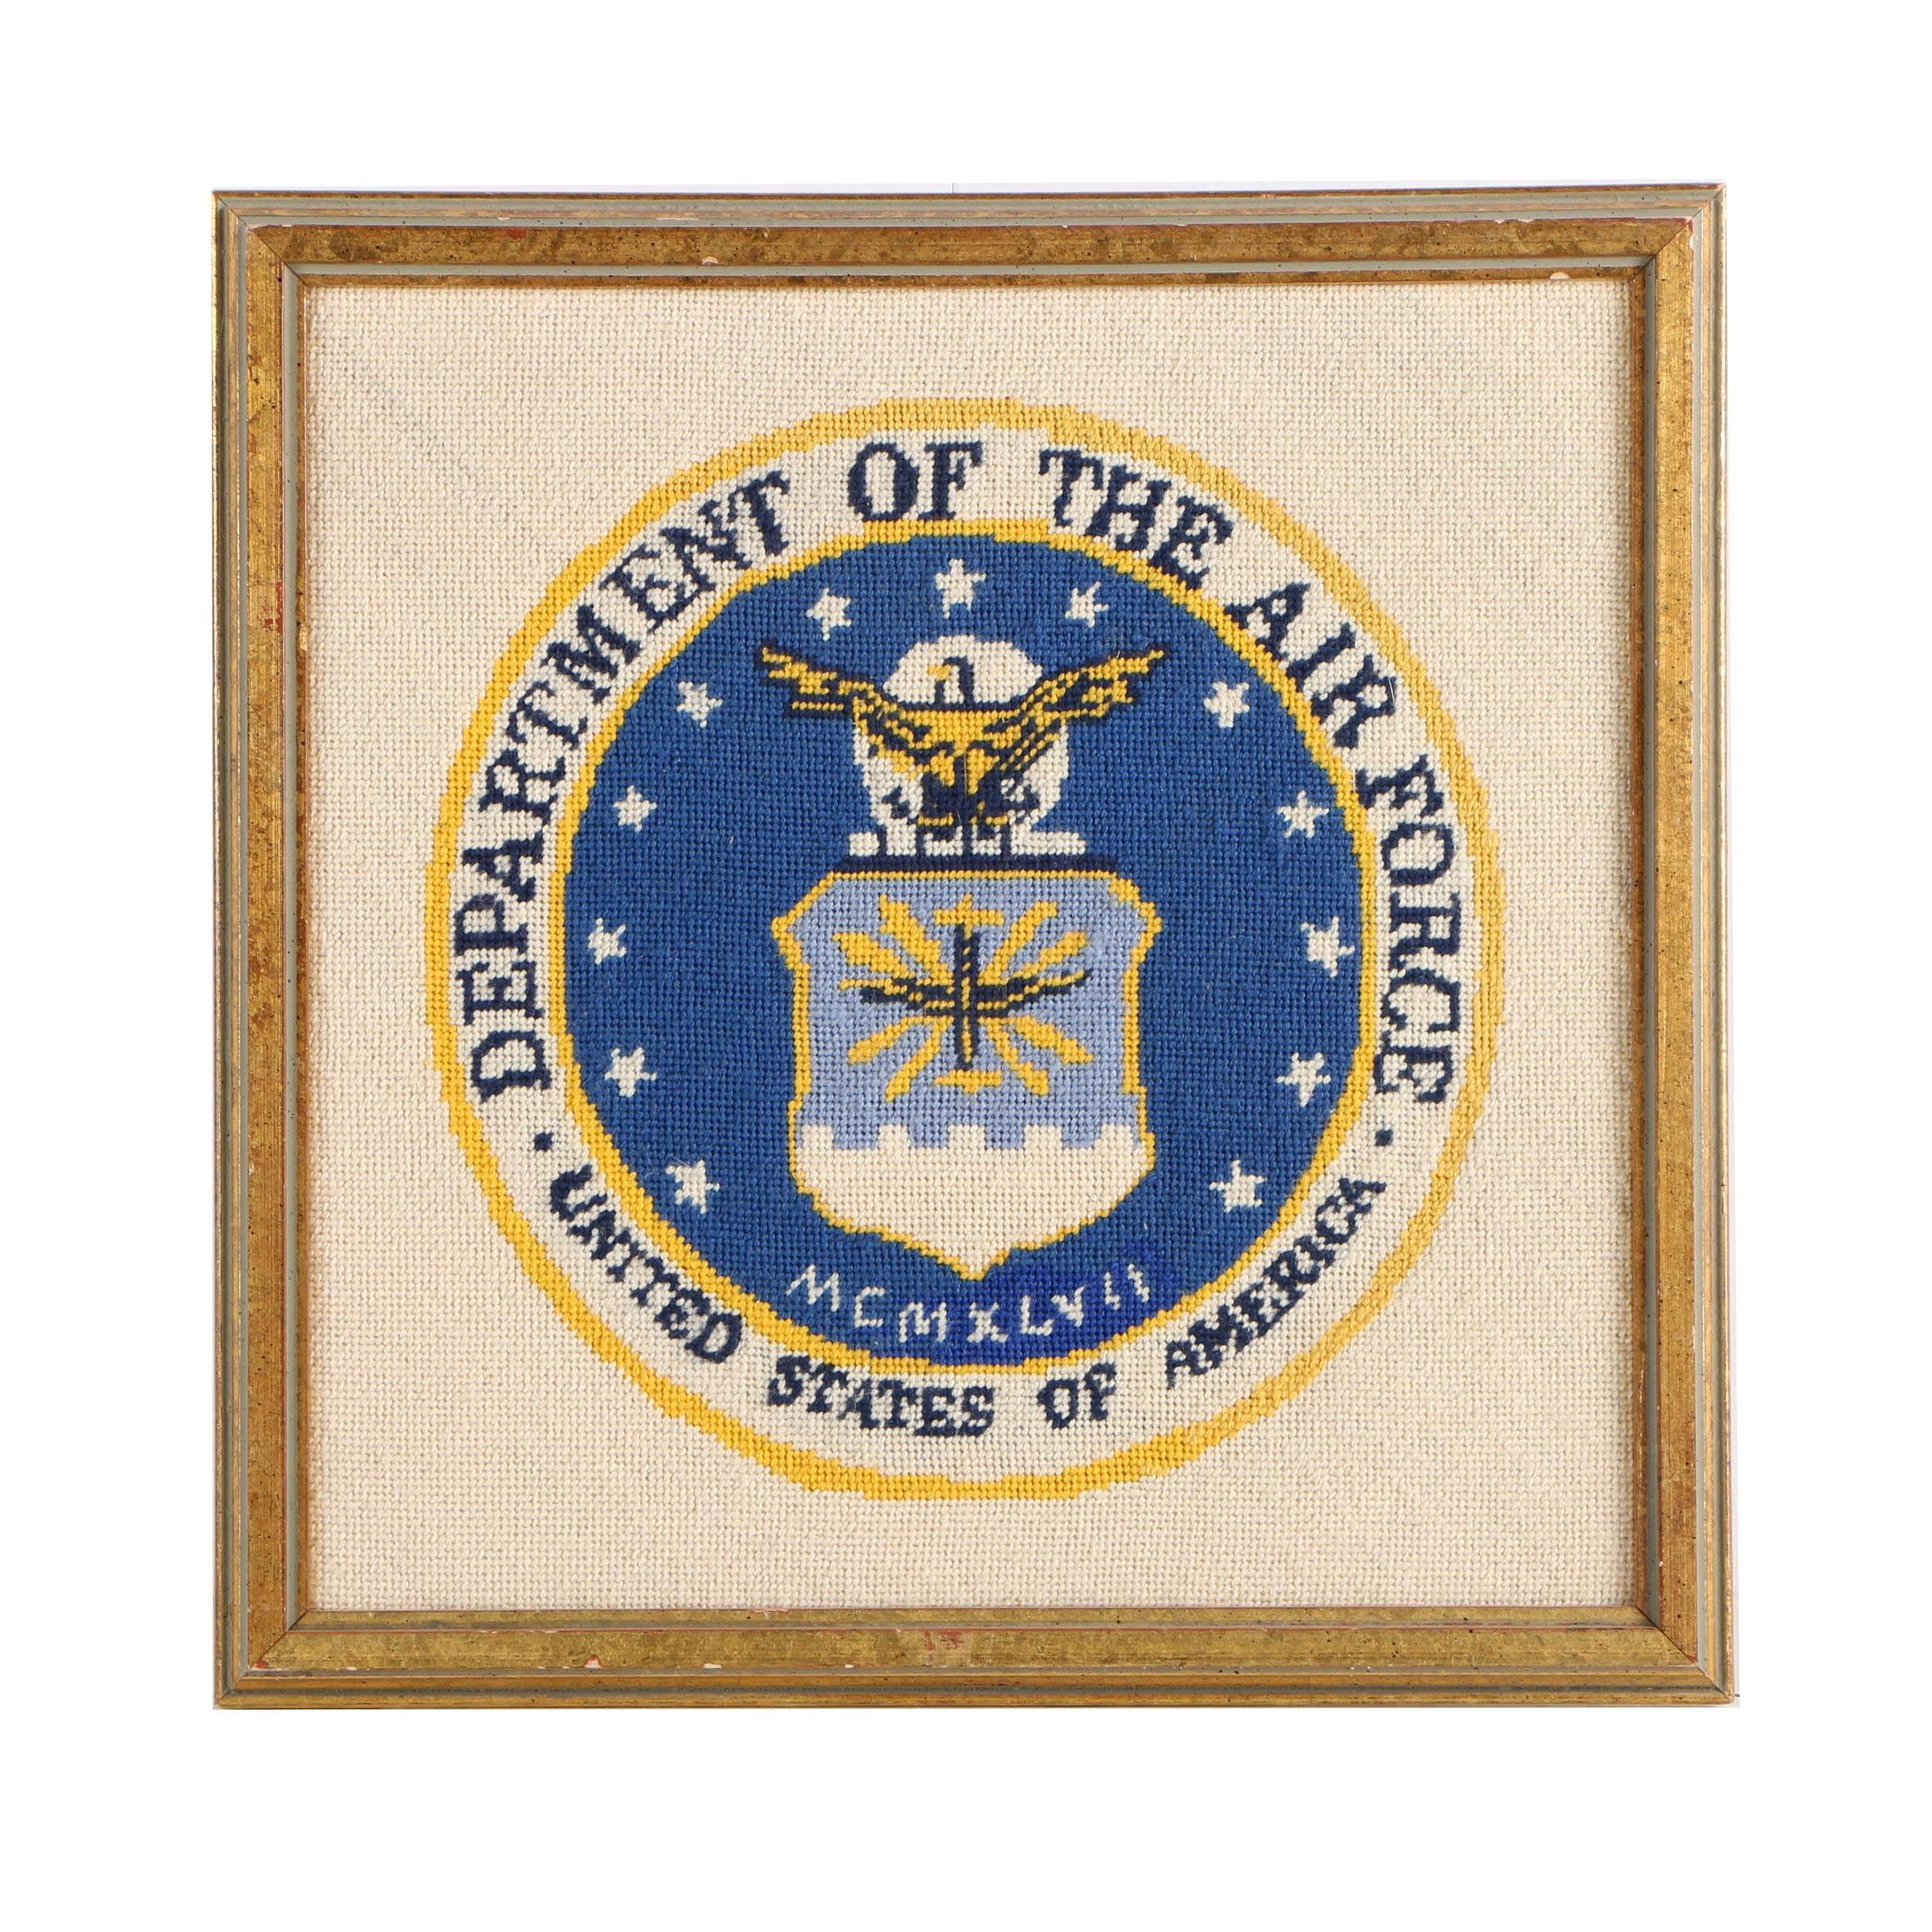 Needlepoint of the Air Force Seal